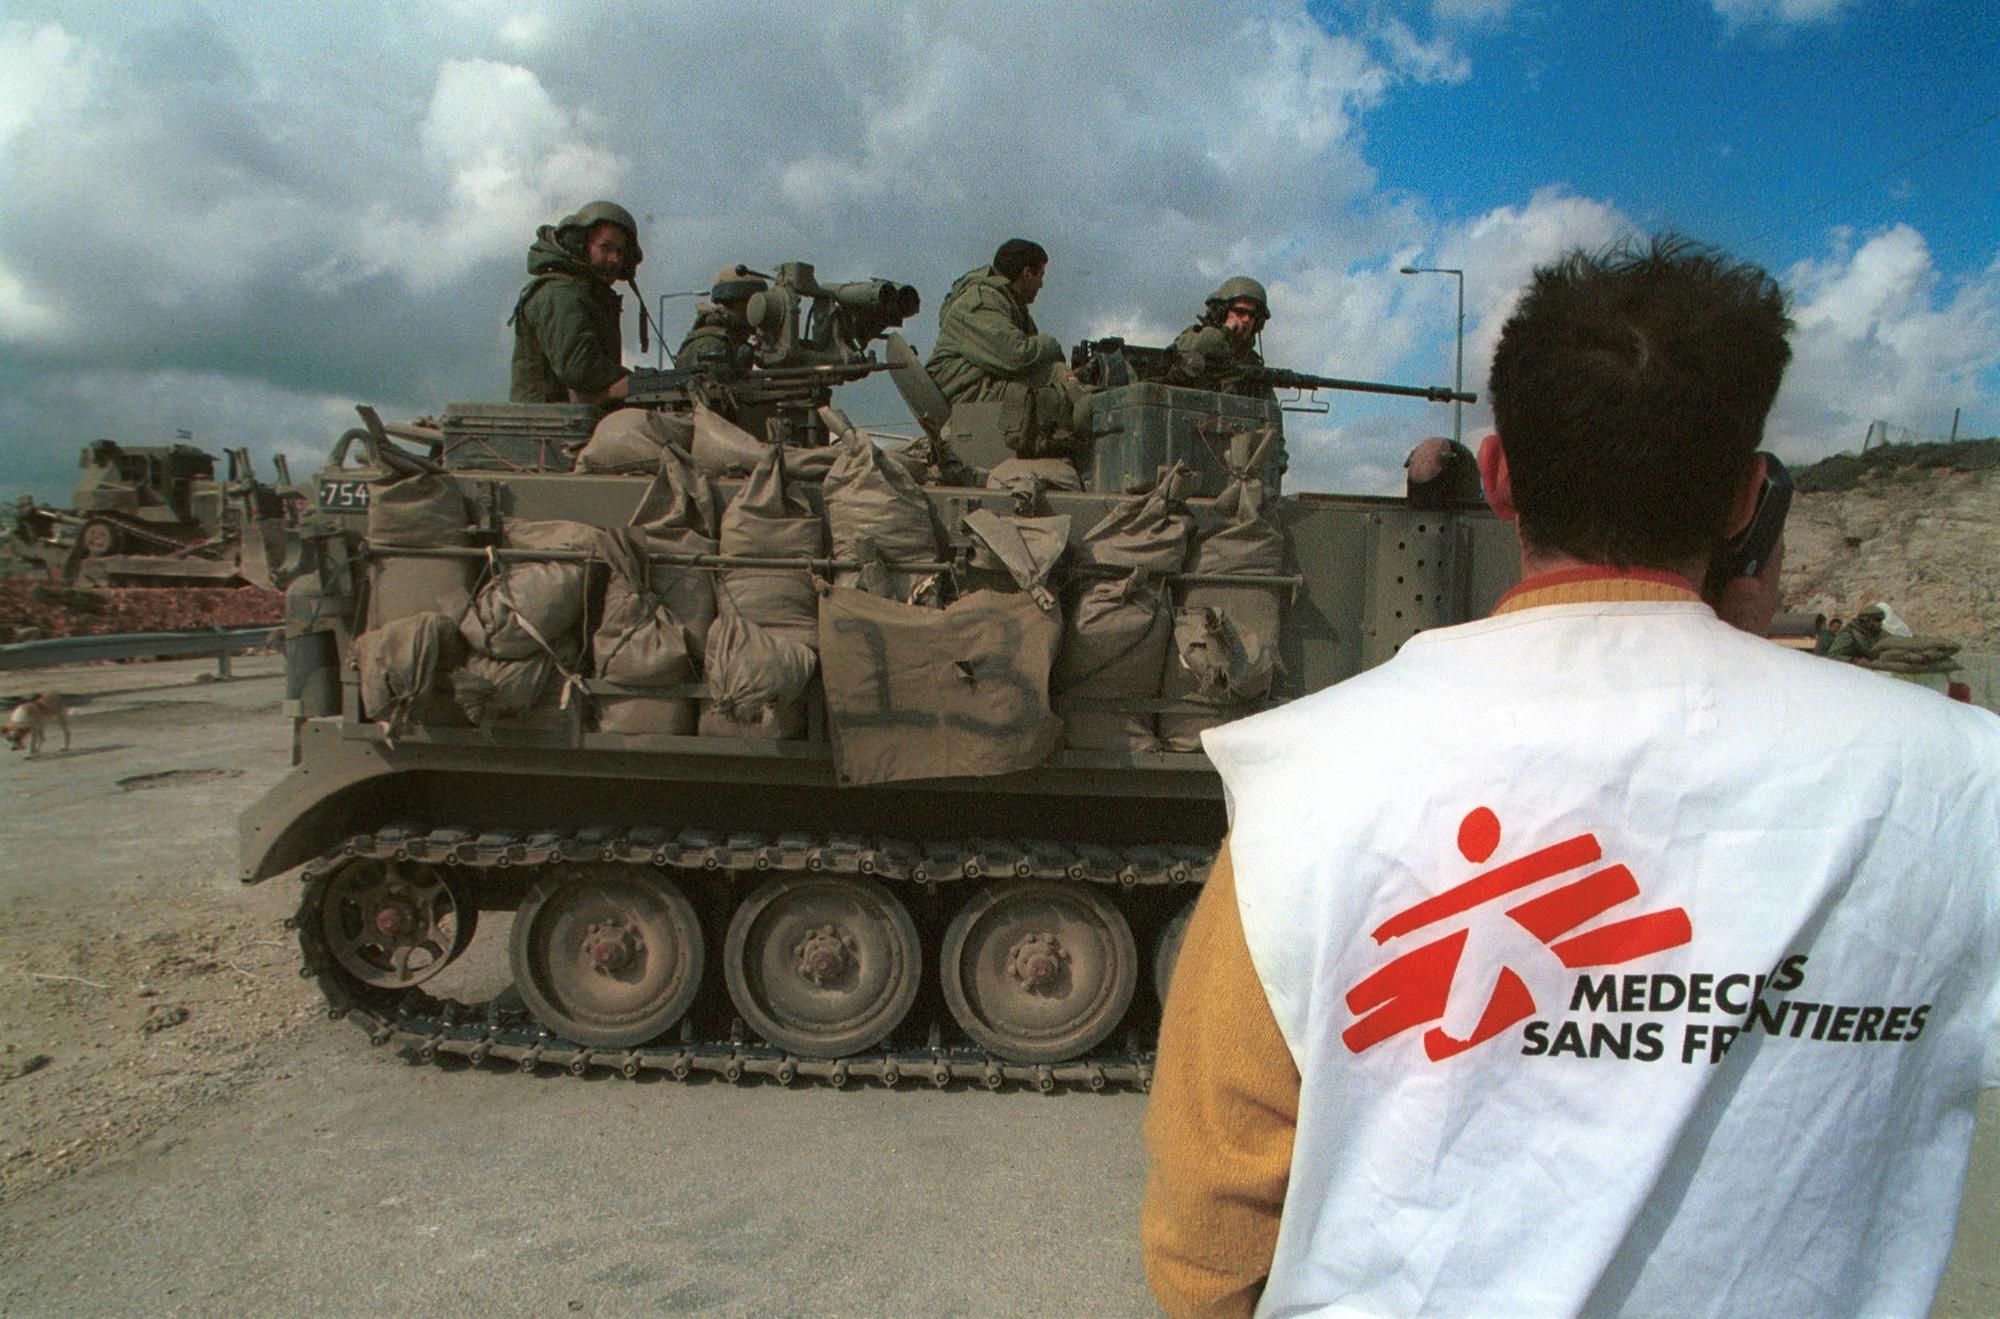 An MSF staff member waits at a check point in Palestine.